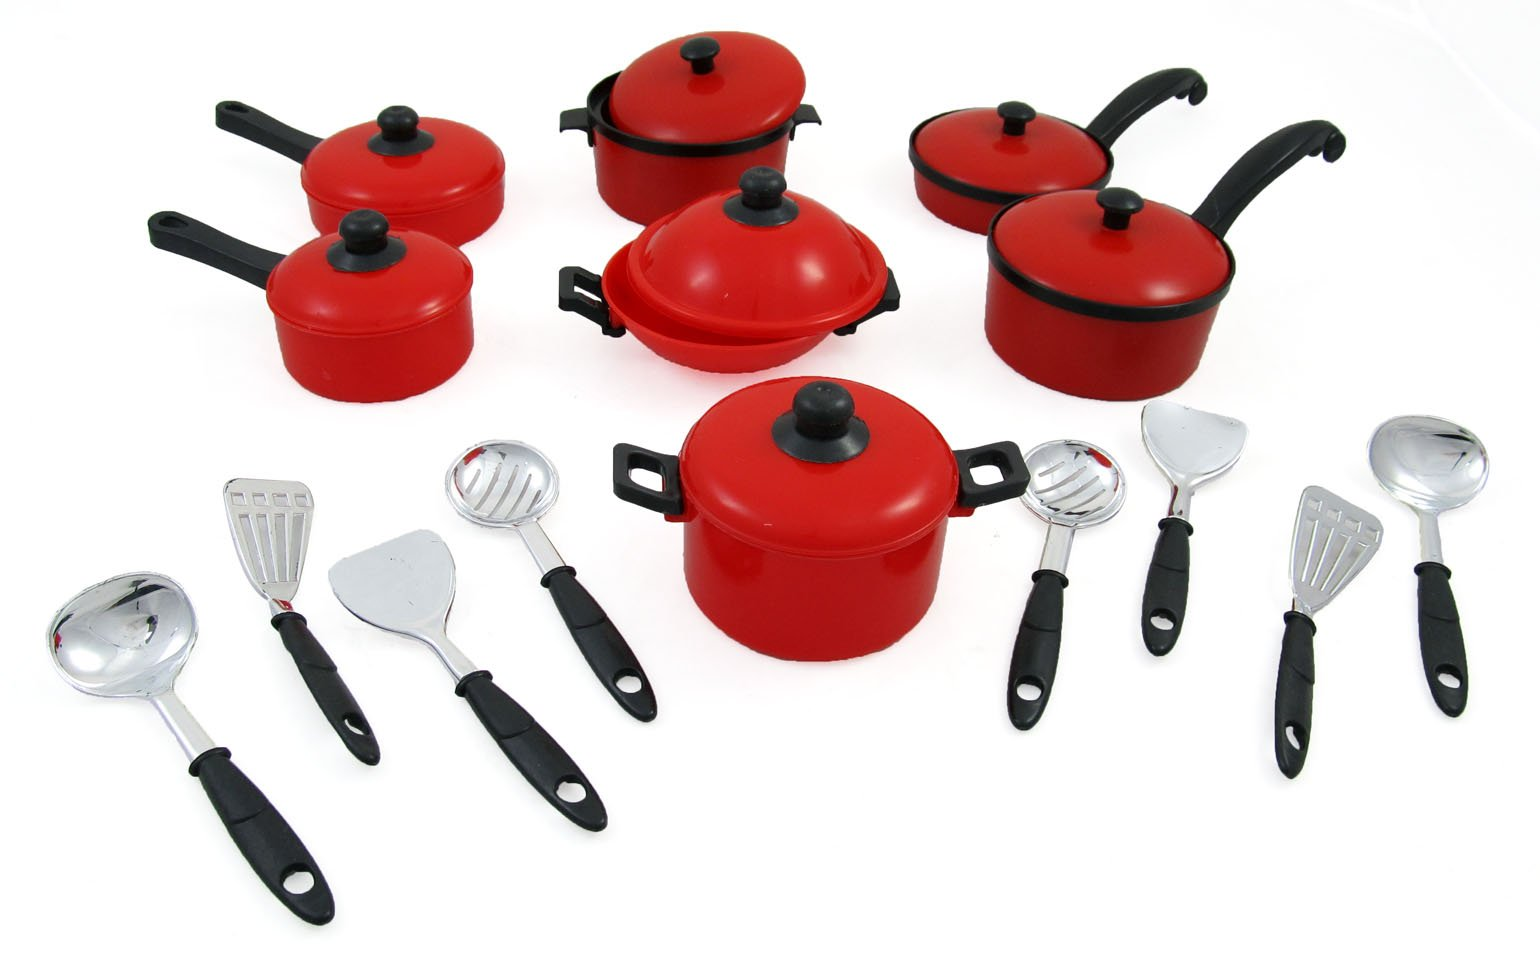 Kitchen cookware play set for kids miniature pots and pans for Mini kitchen set for kids